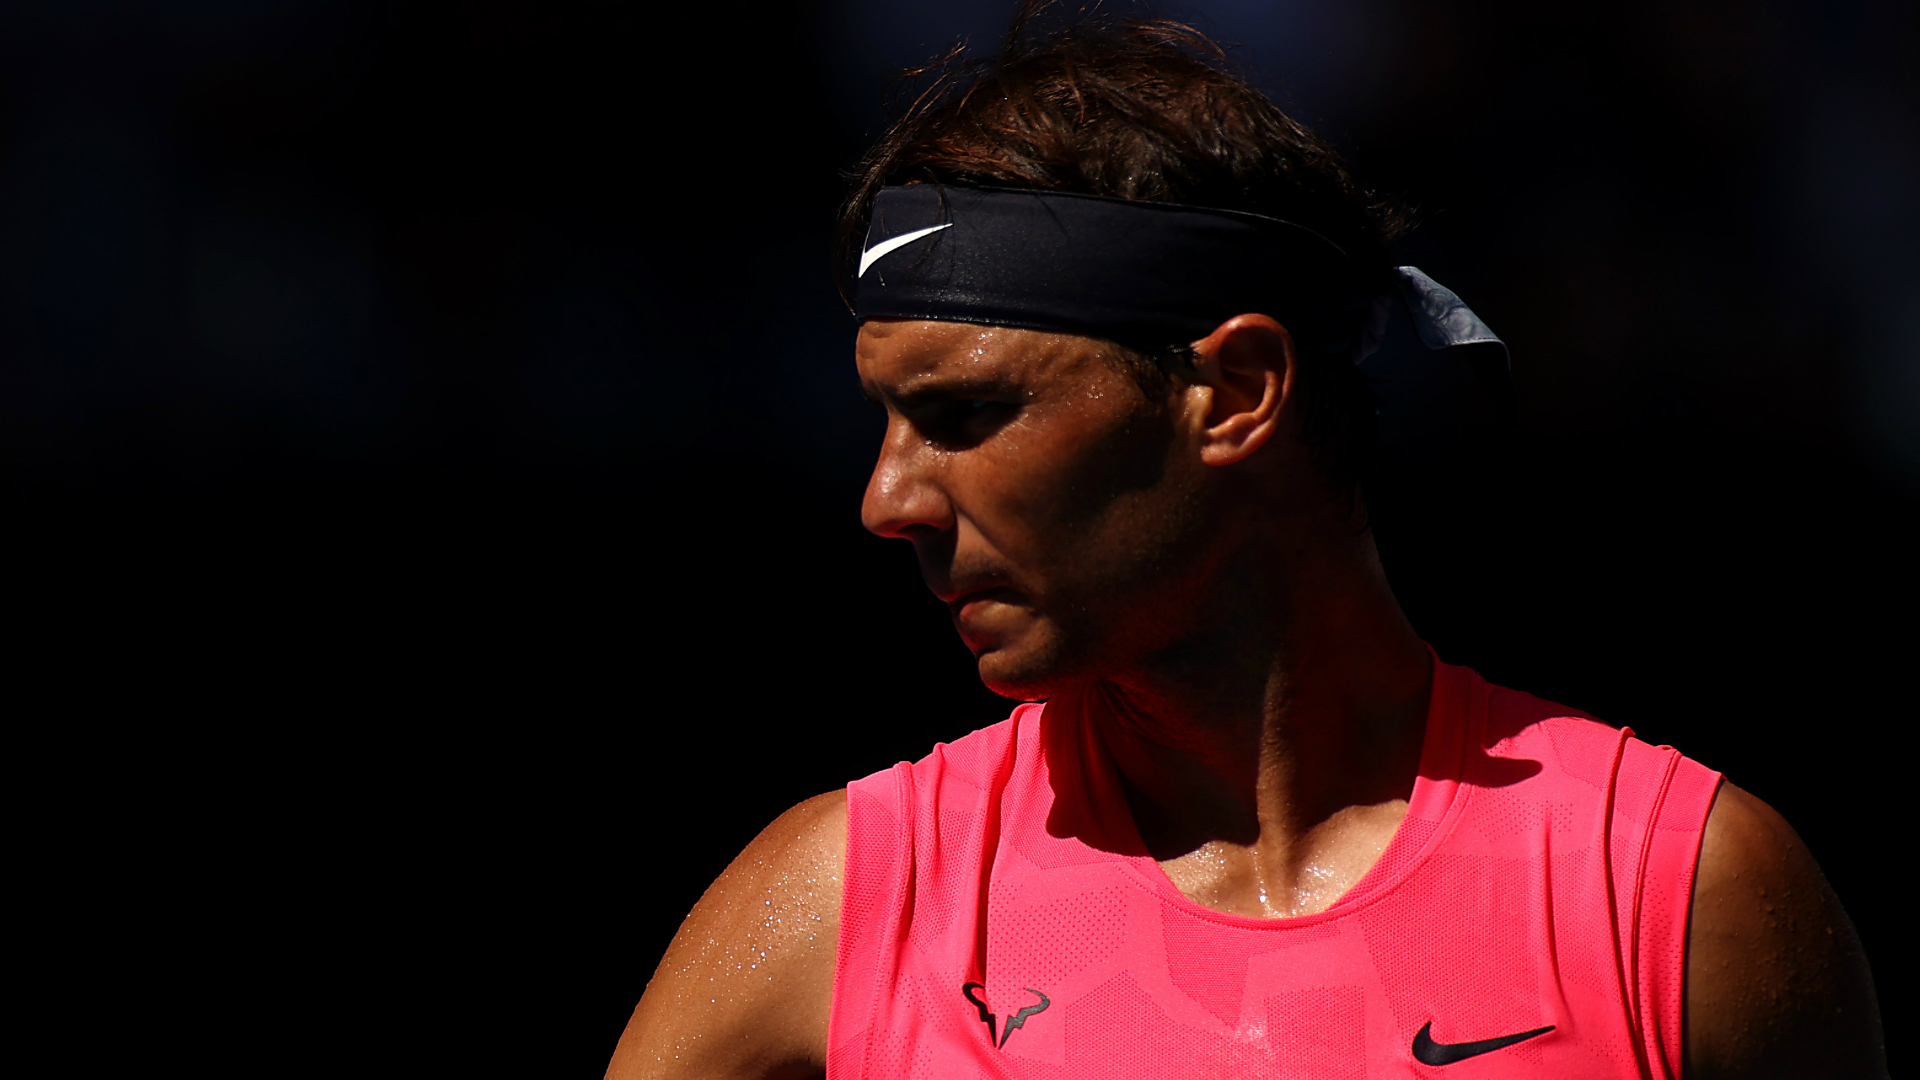 Australian Open 2020: Rafael Nadal results and form ahead of second-round match with Federico Delbonis